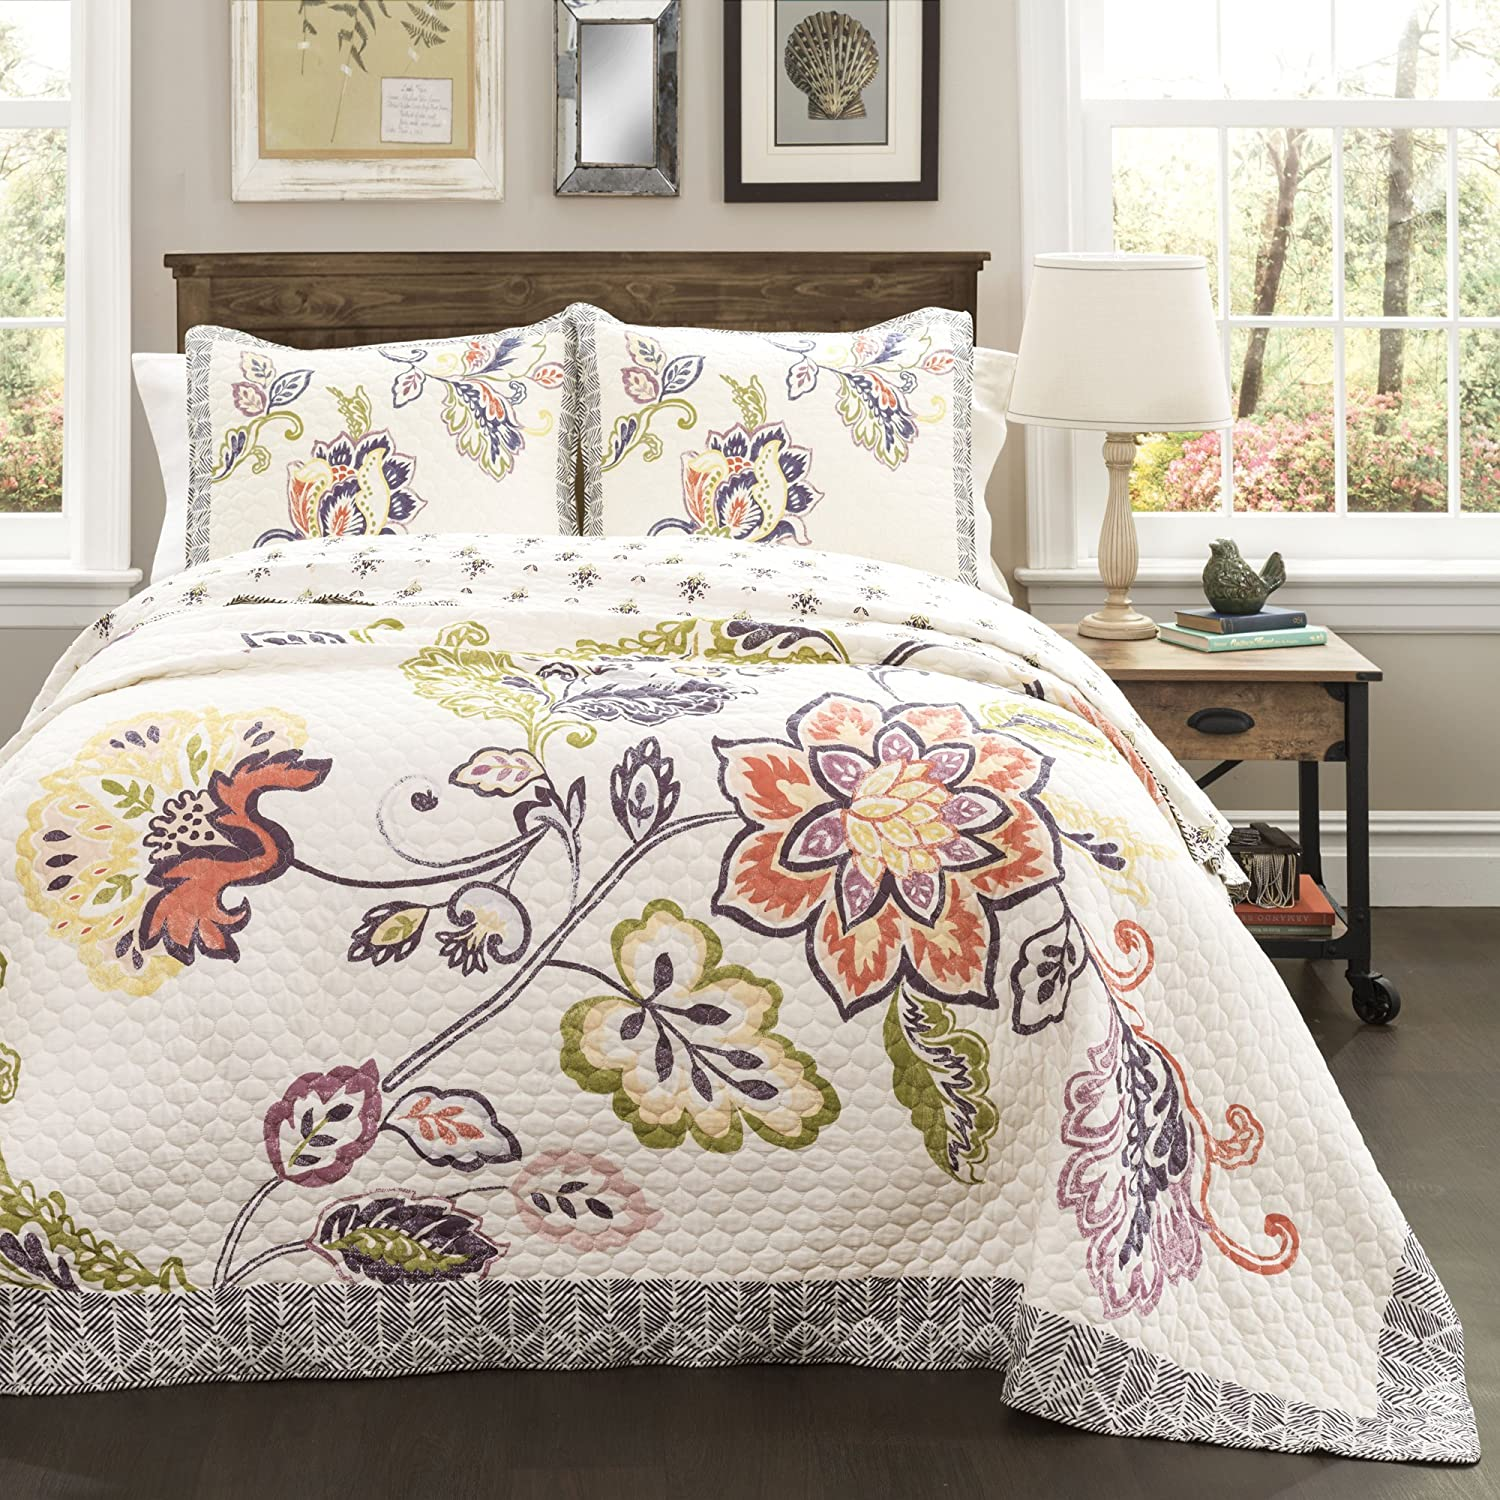 Amazon Lush Decor Aster Quilt 3 Piece Set King Coral Navy